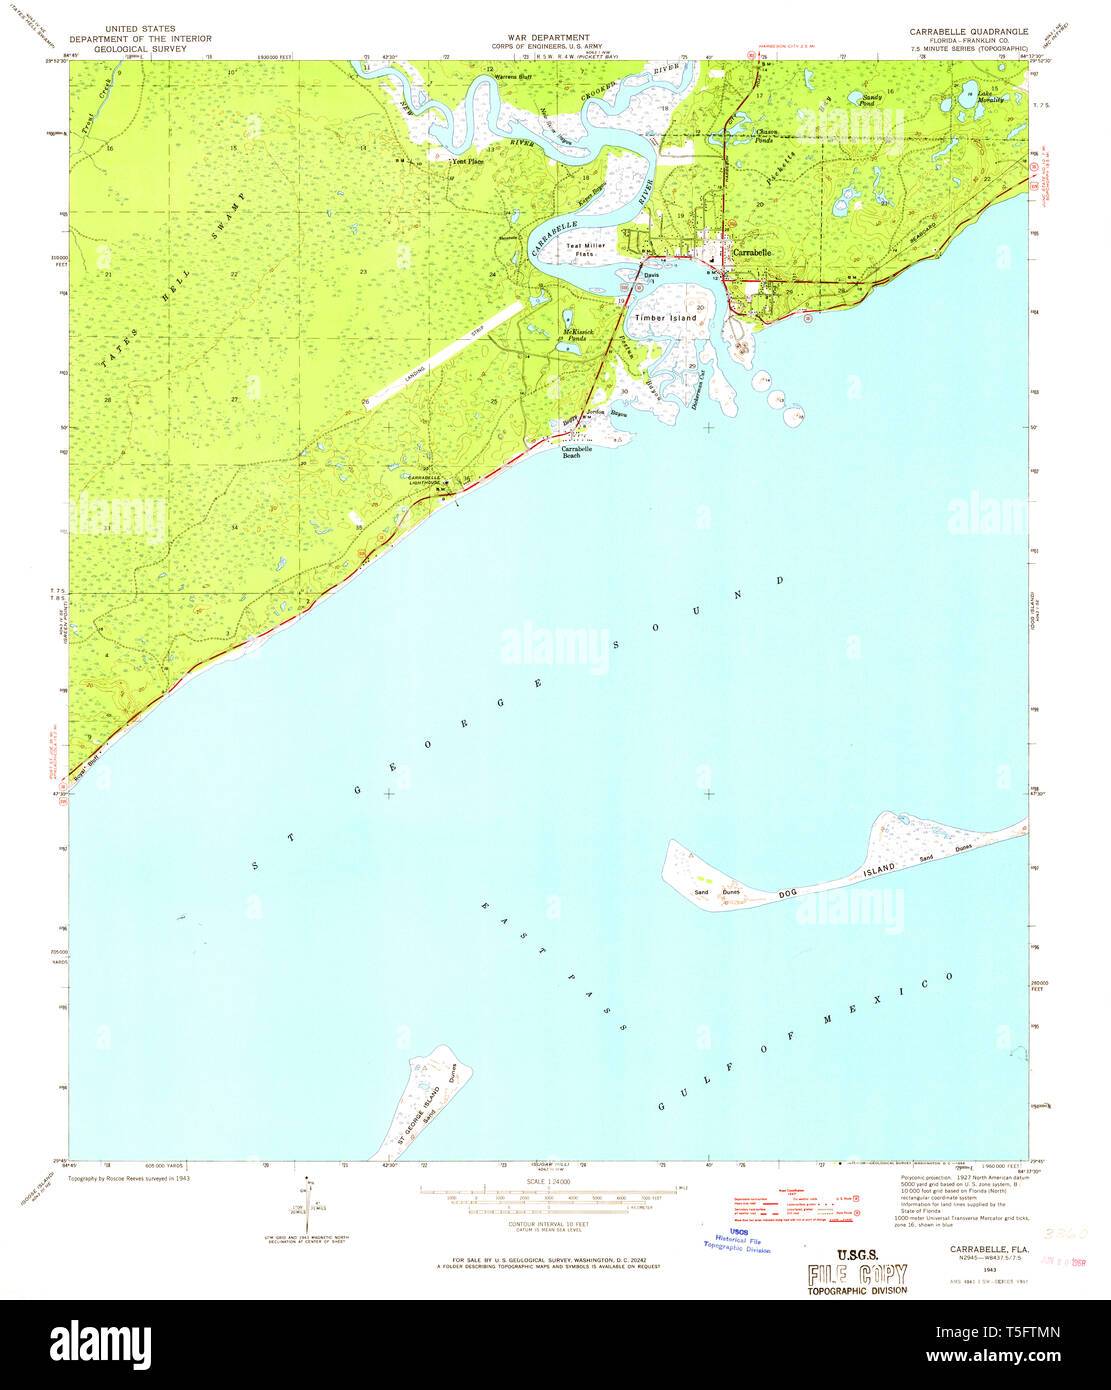 USGS TOPO Map Florida FL Carrabelle 345428 1943 24000 ... Carrabelle Florida Map on bradfordville florida map, pascagoula florida map, sharpes florida map, brookridge florida map, evinston florida map, sumatra florida map, molino florida map, pensacola bay florida map, campbellton florida map, warrington florida map, vamo florida map, baton rouge florida map, north carolina florida map, st. johns river florida map, hypoluxo florida map, south daytona florida map, st. george island state park florida map, pretty bayou florida map, mobile florida map, massachusetts florida map,